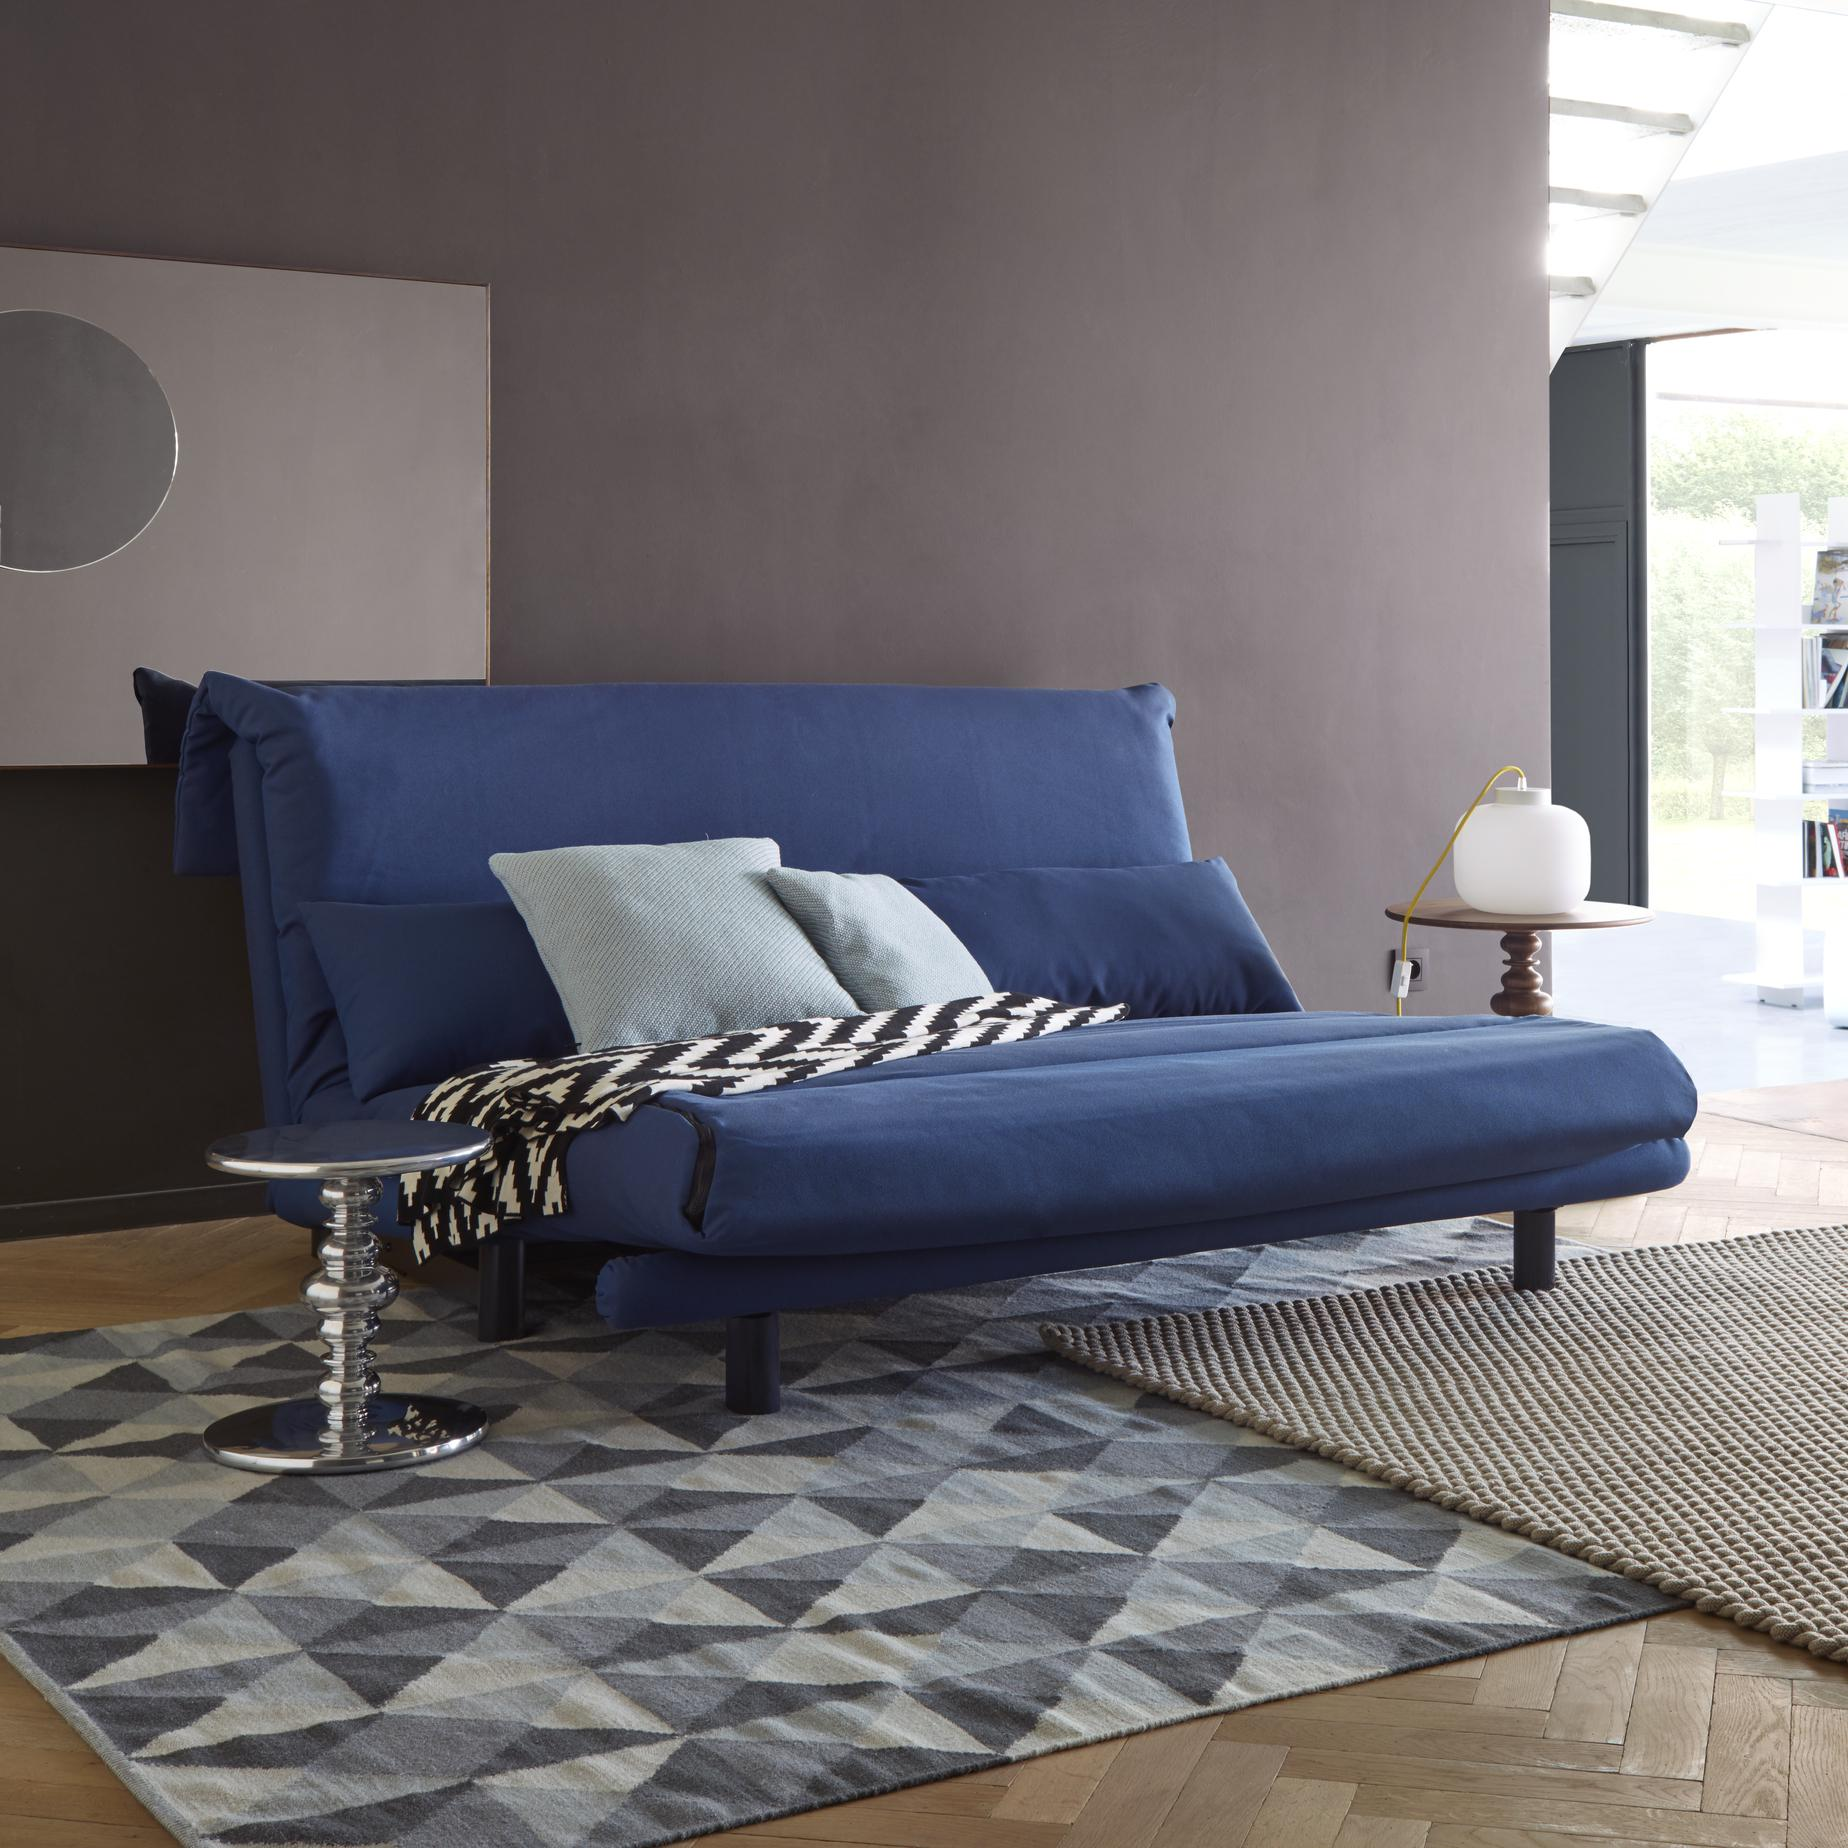 MULTY Sofa Beds Designer Claude Brisson